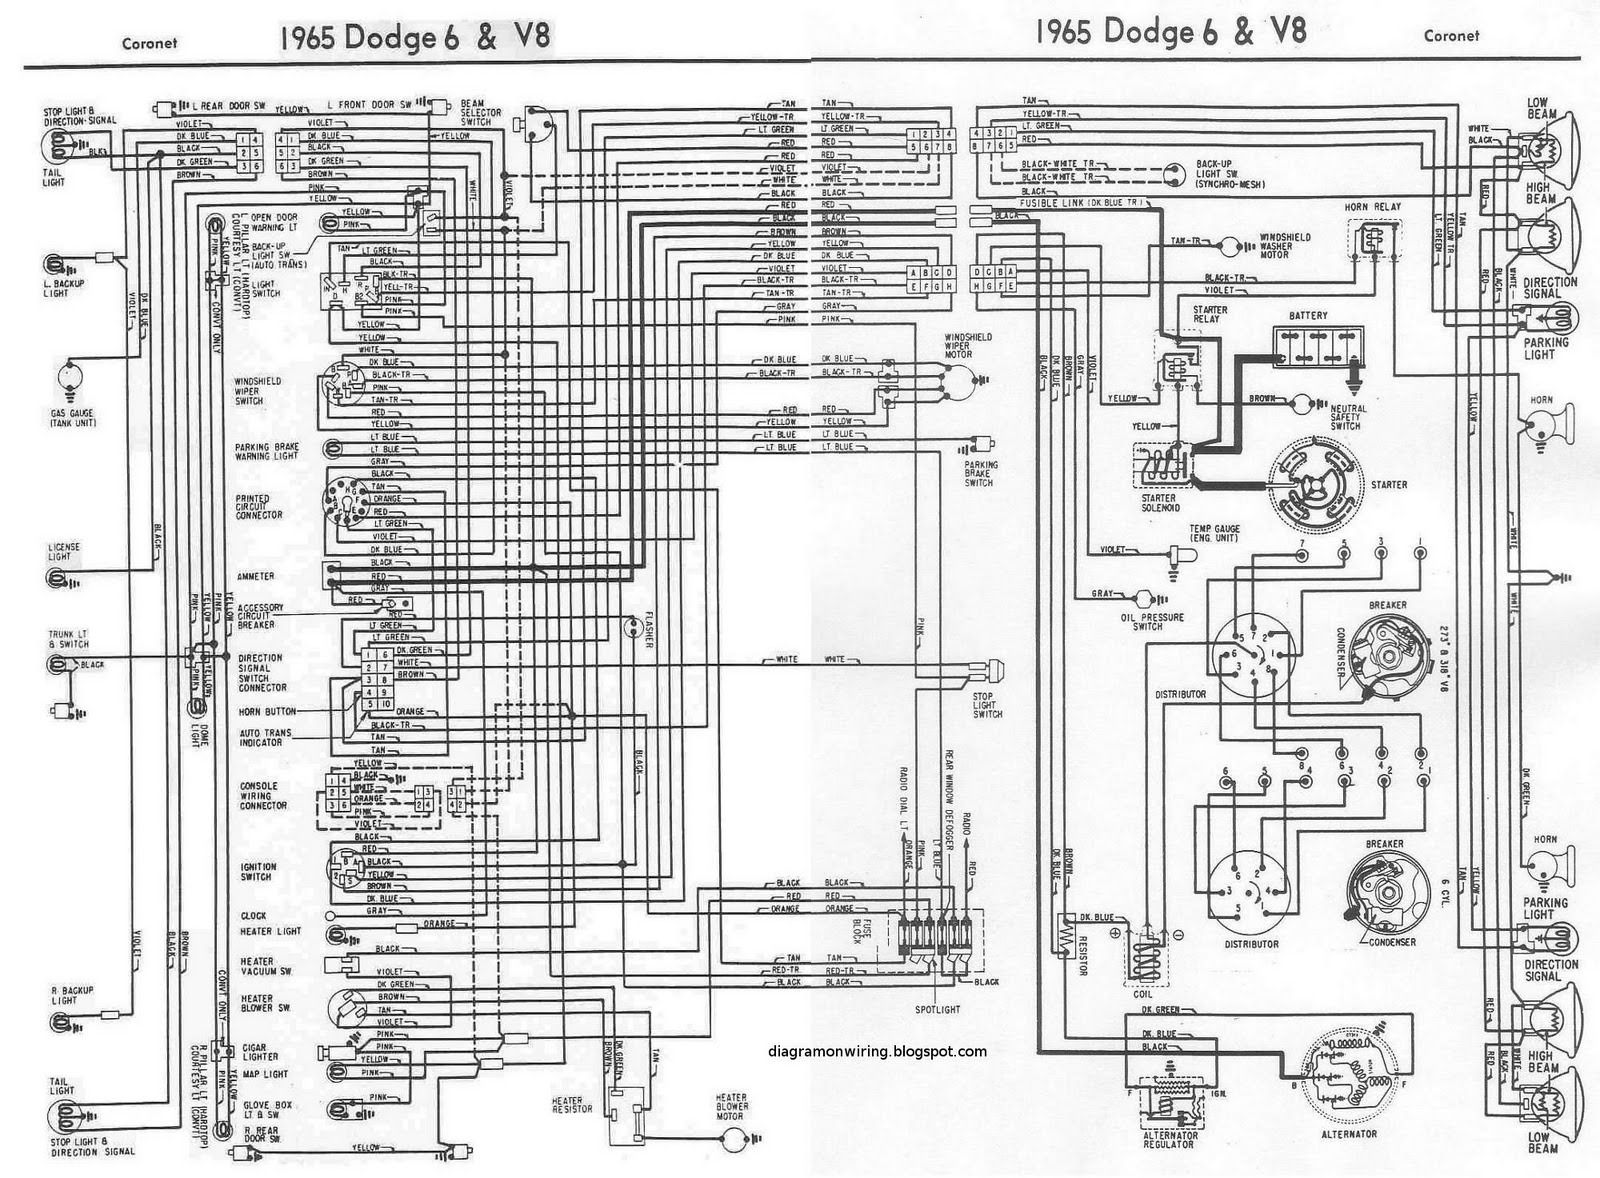 wiring diagram for 1966 dodge coronet wiring diagram expert wiring diagram for 1966 dodge coronet [ 1600 x 1178 Pixel ]